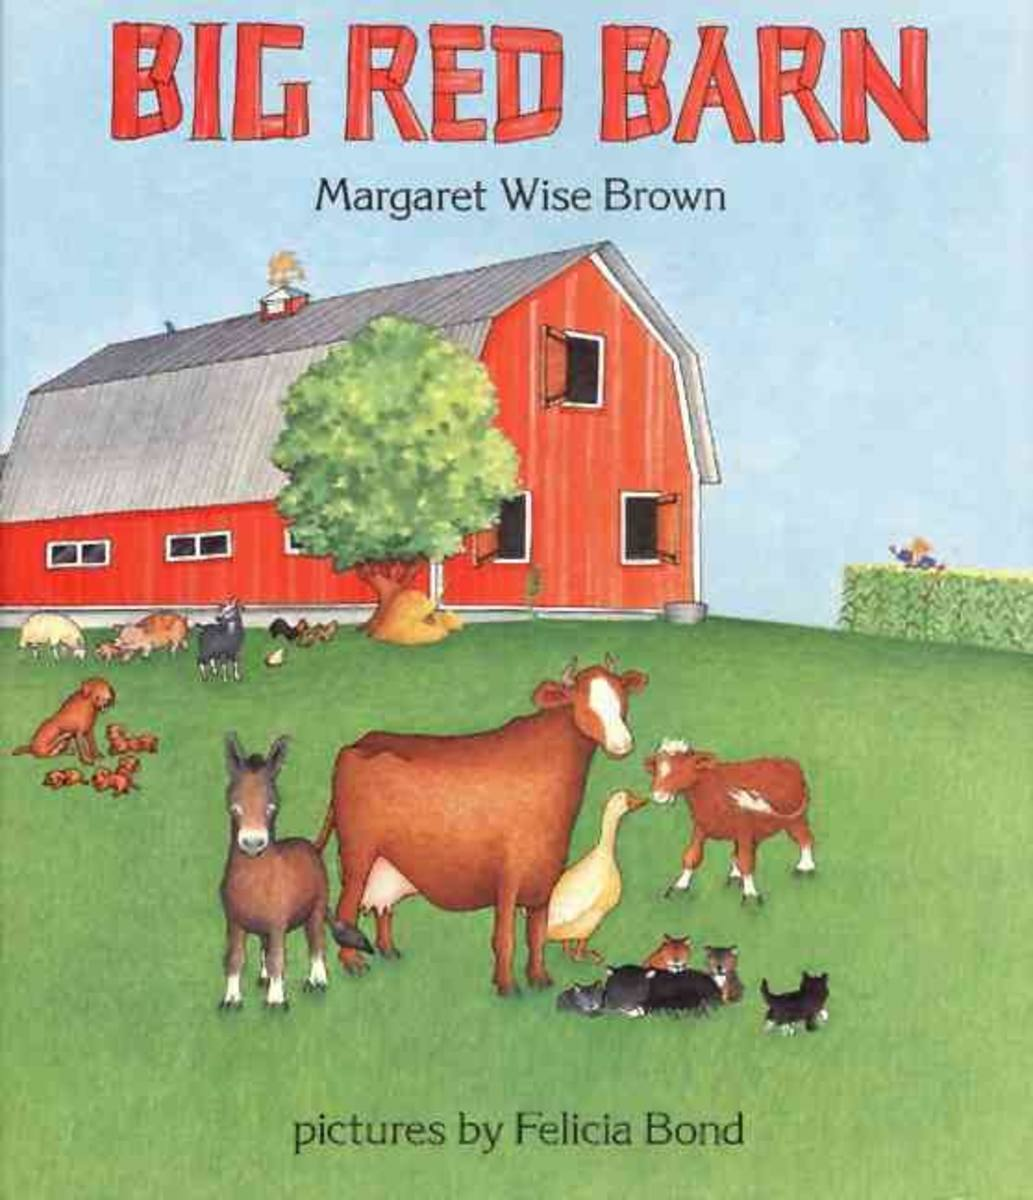 The Best Baby Board Book—Big Red Barn